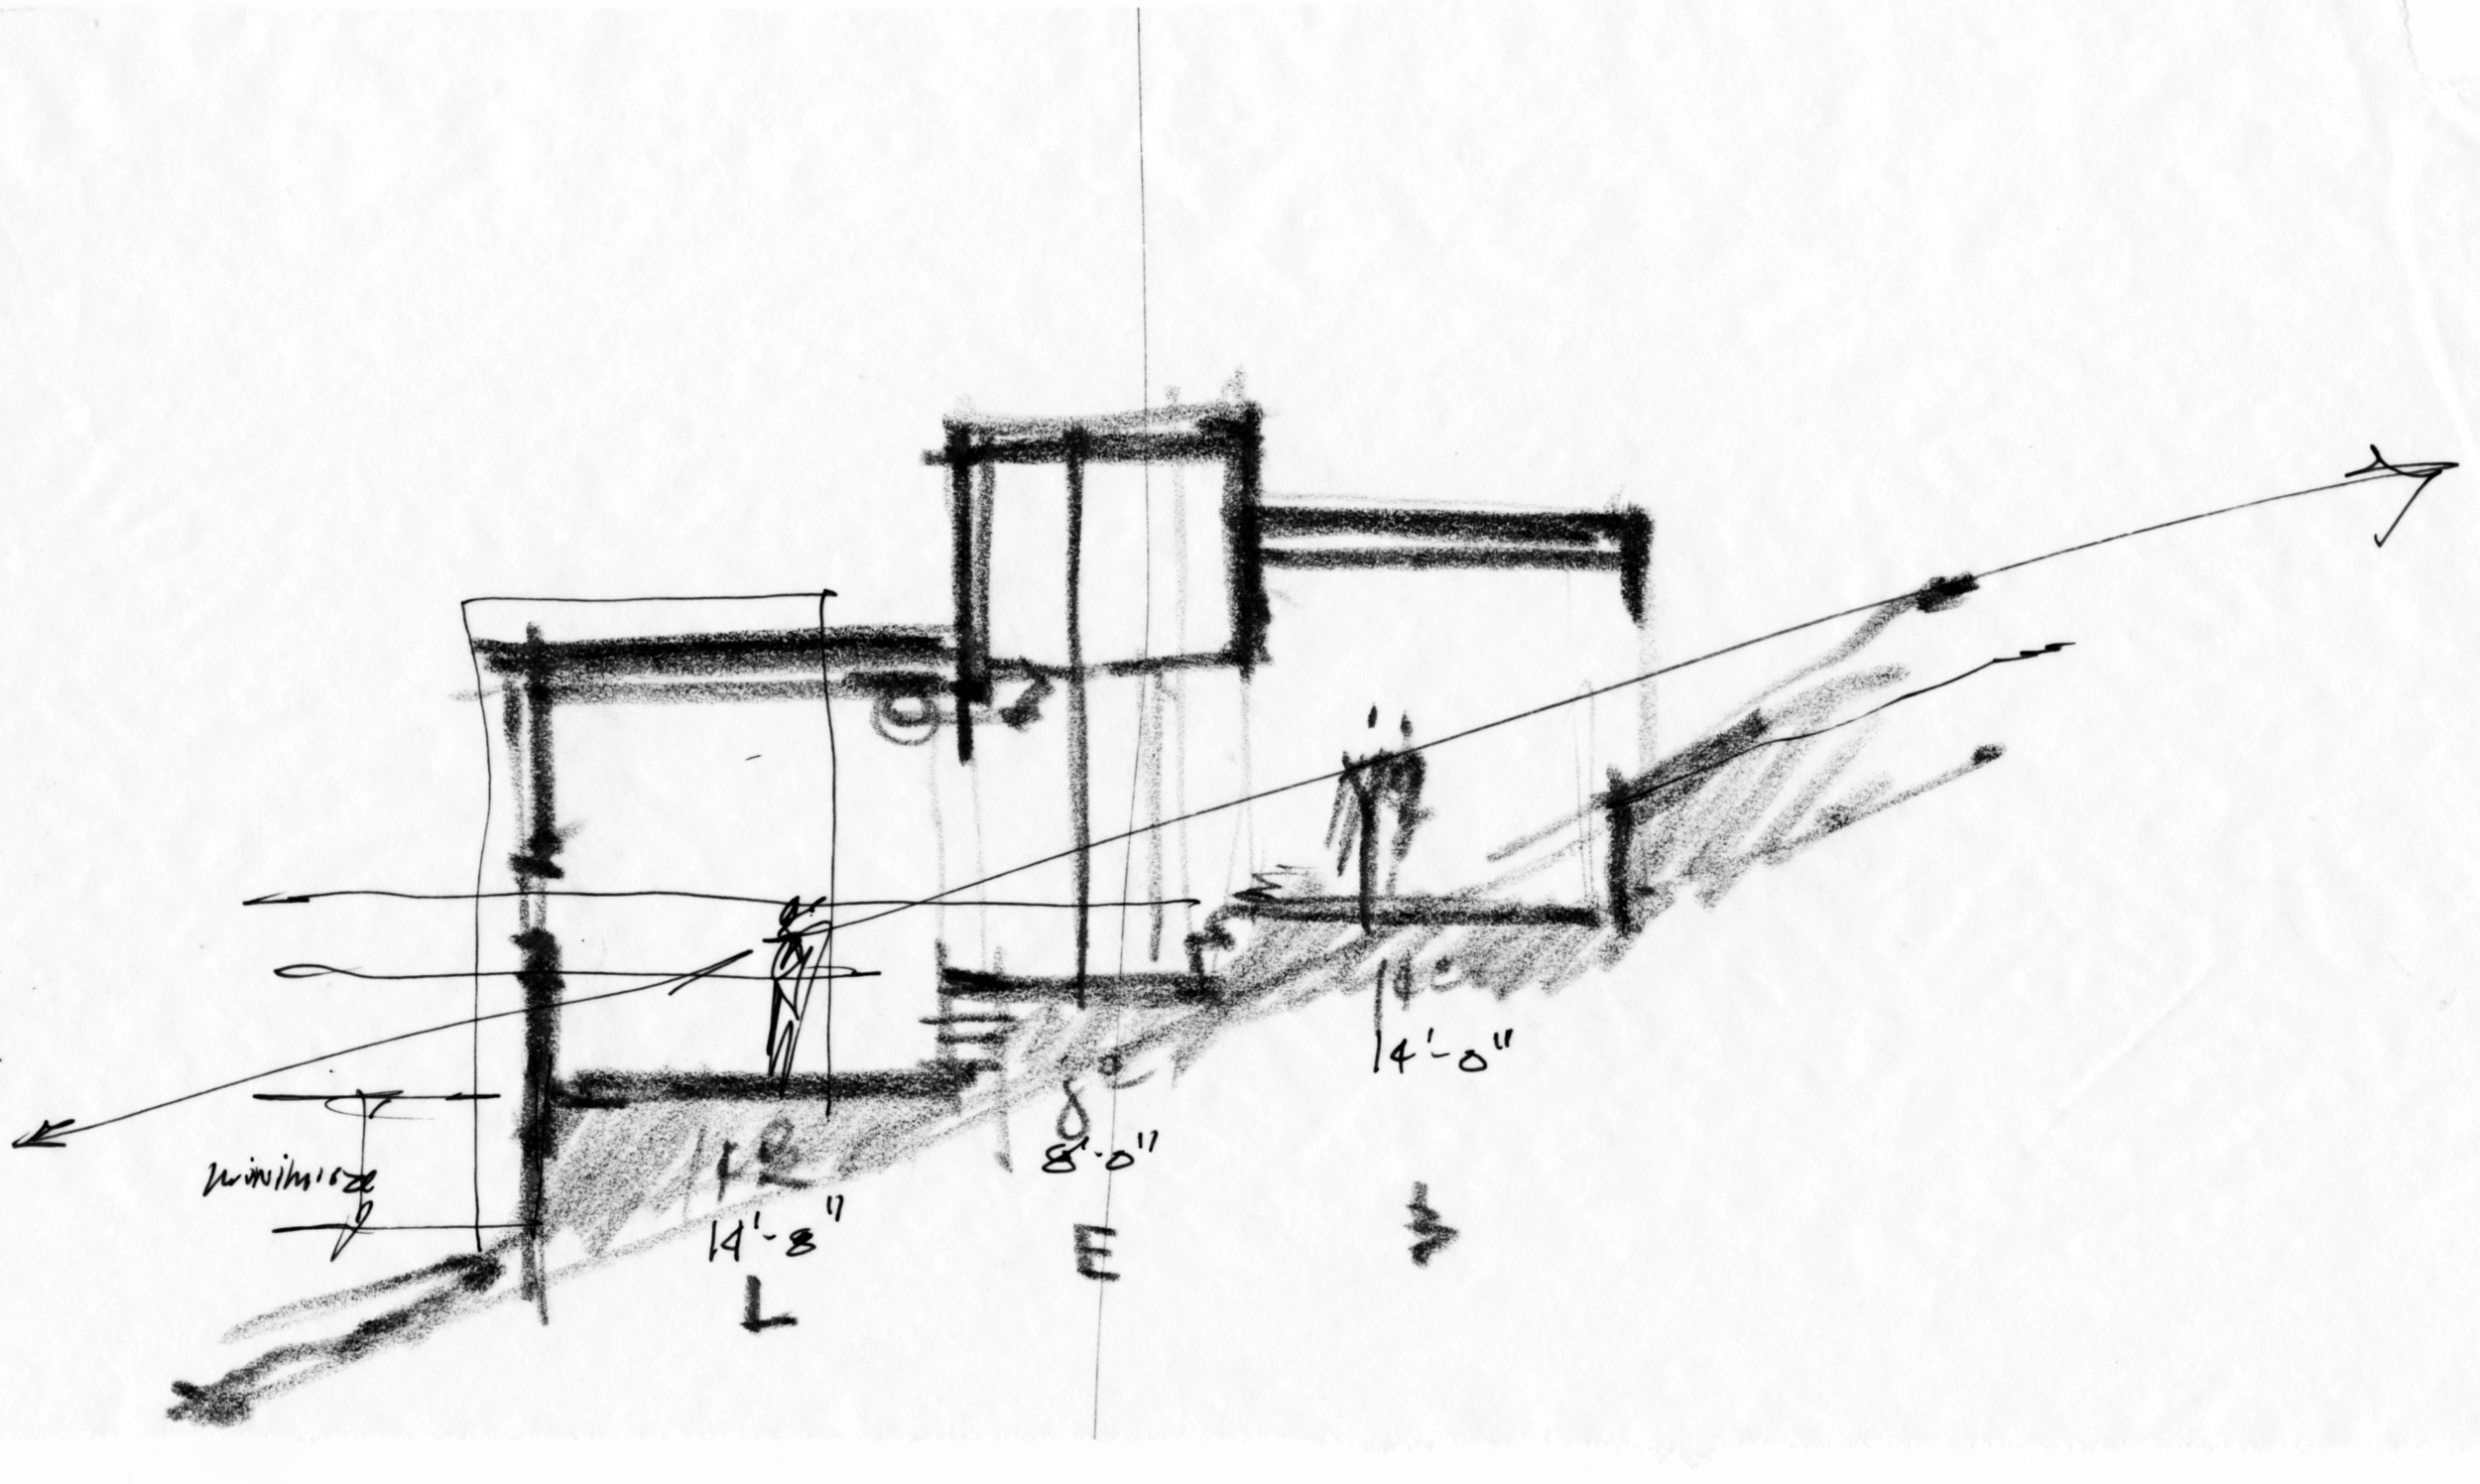 Section Cut Sketch